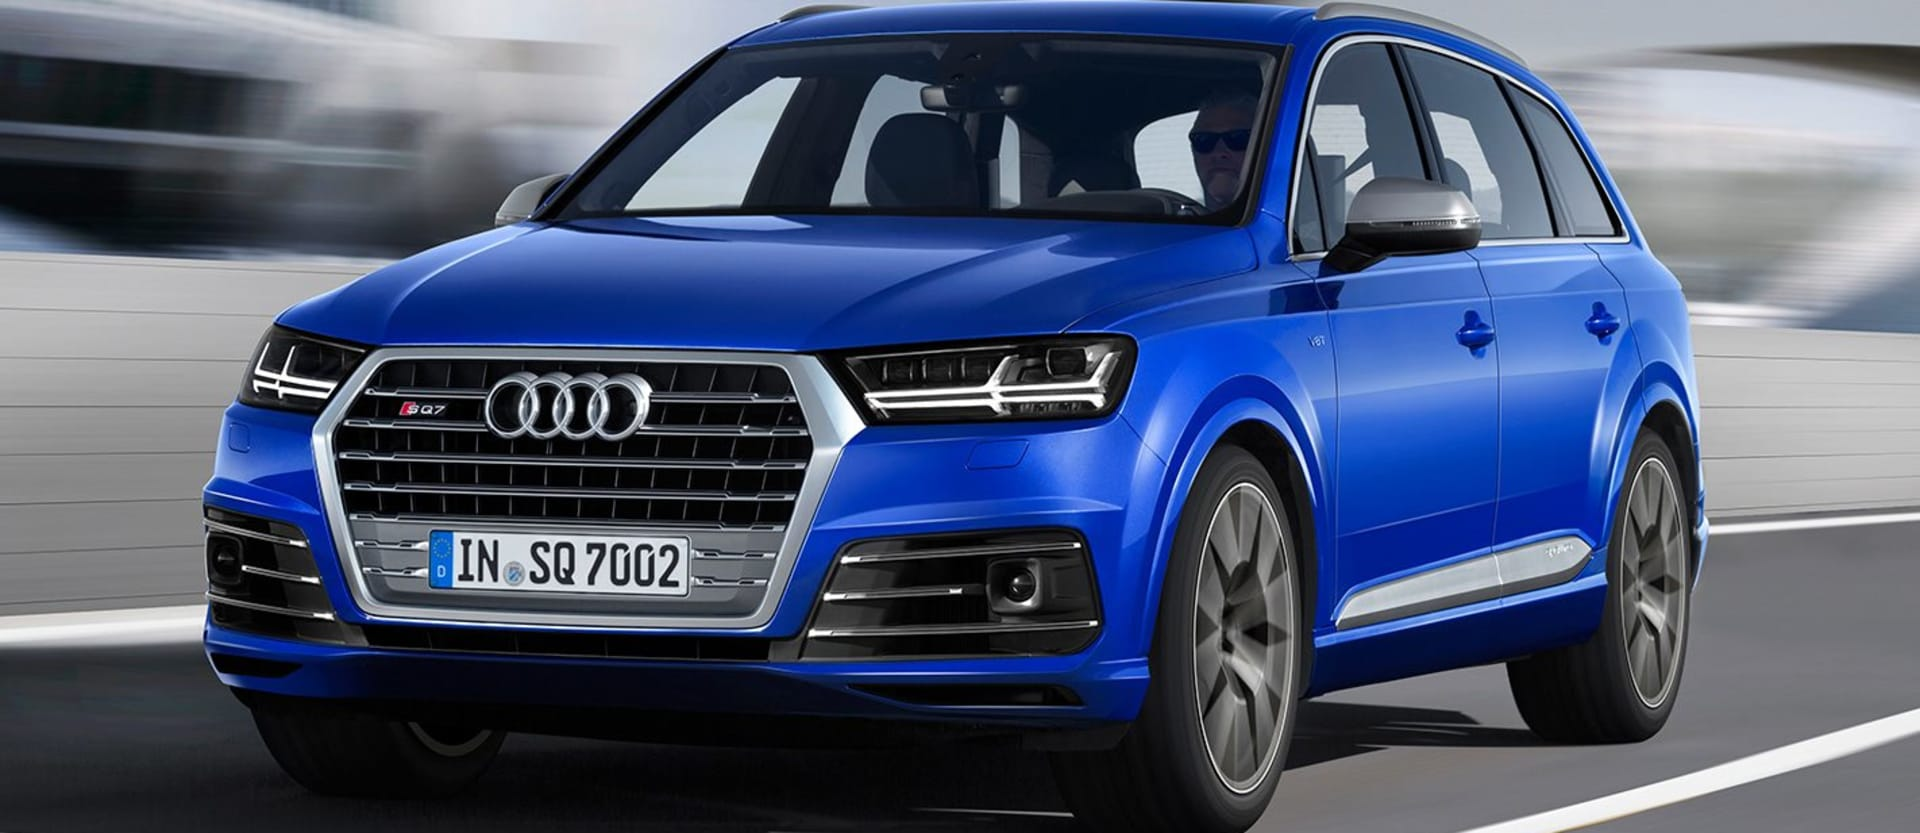 Audi SQ 7 Driving Front Side Jpg